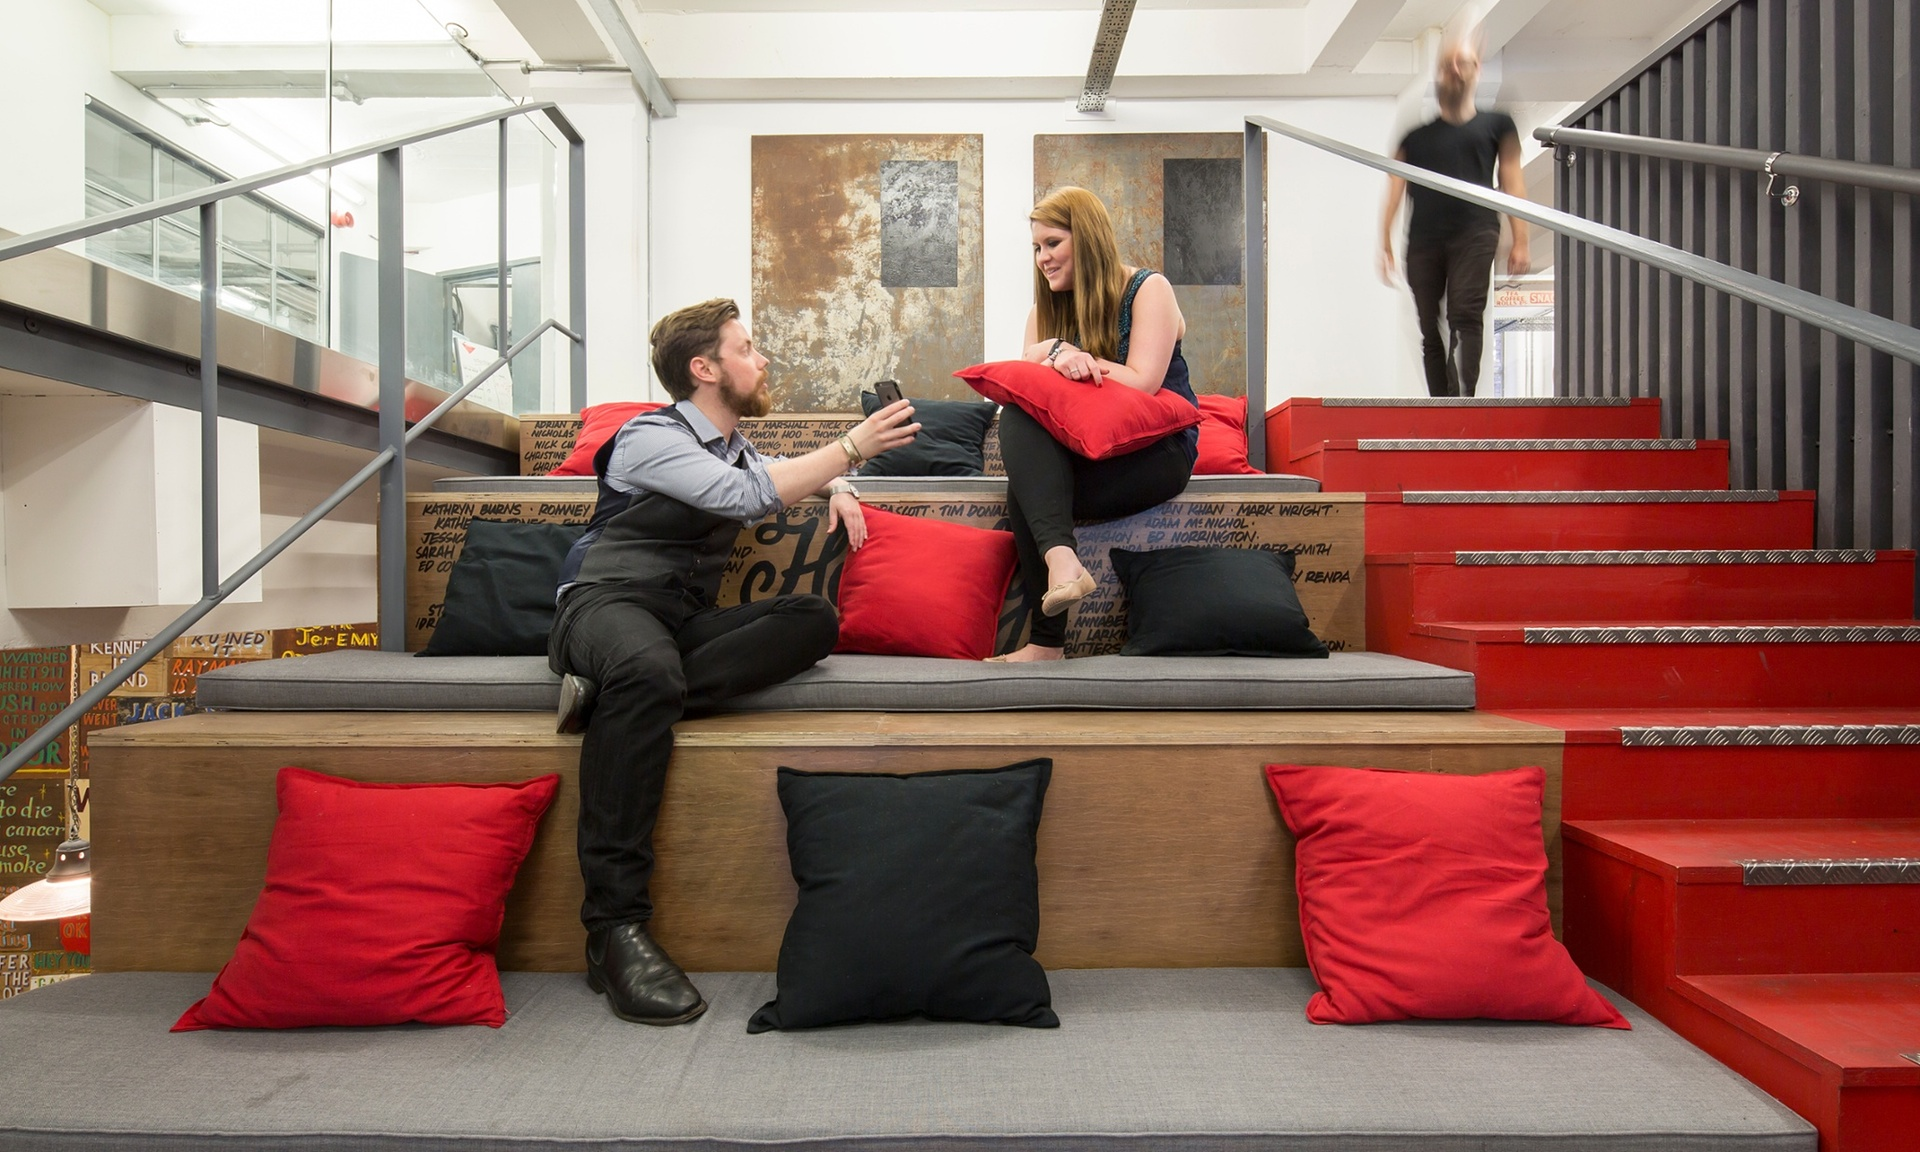 Sit and stair: Albion has got creative with its meeting spaces.